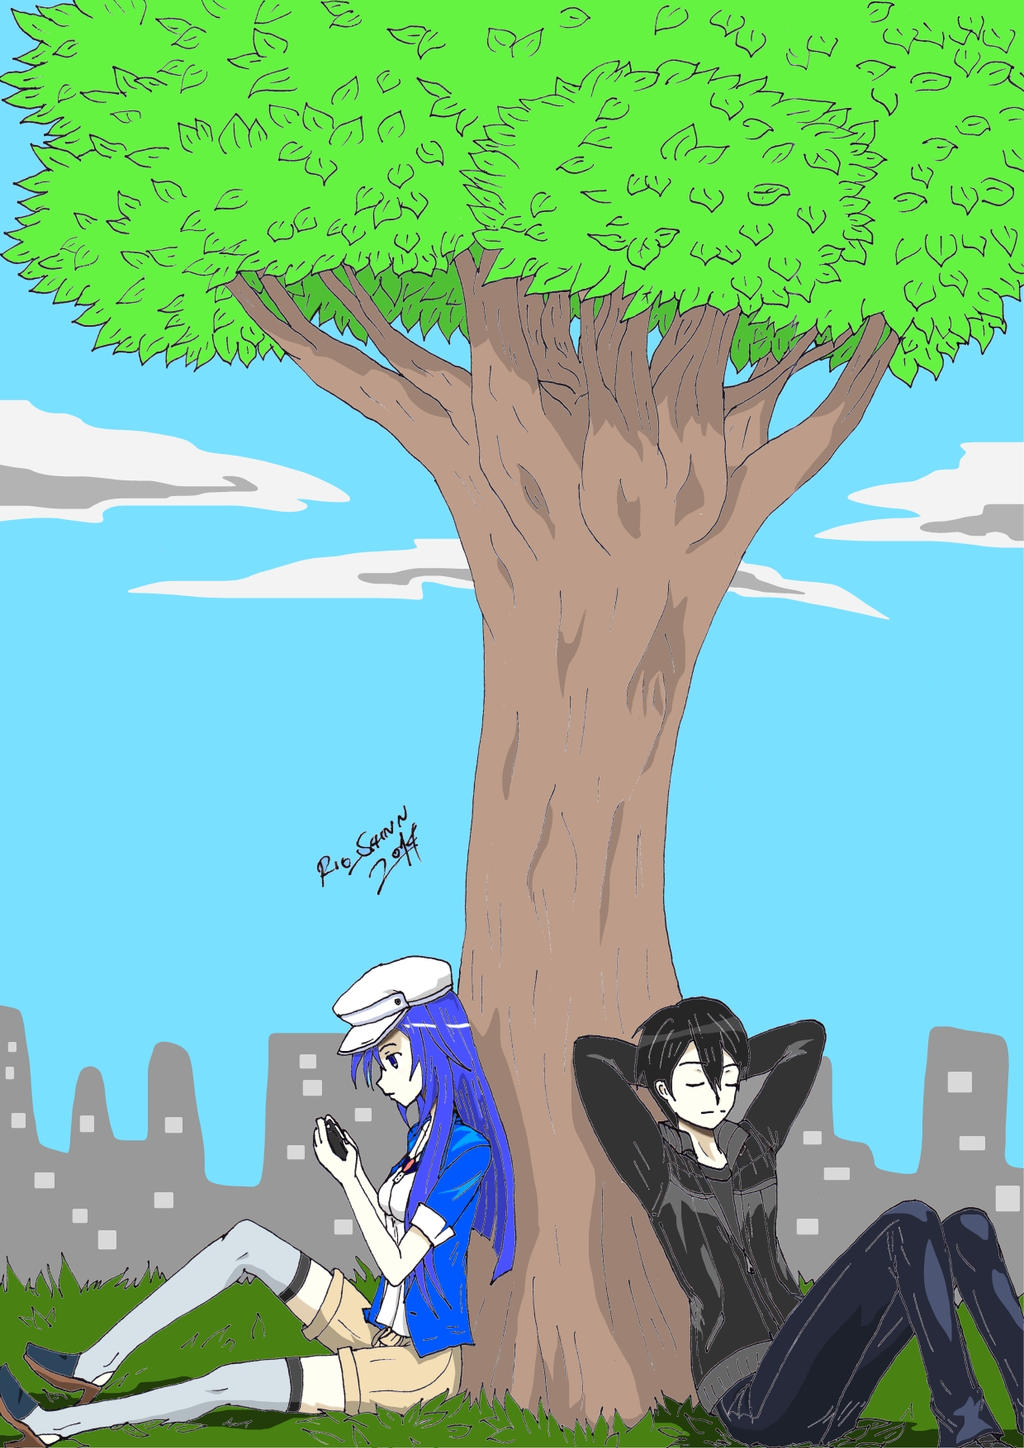 Together Under the Tree by riockman